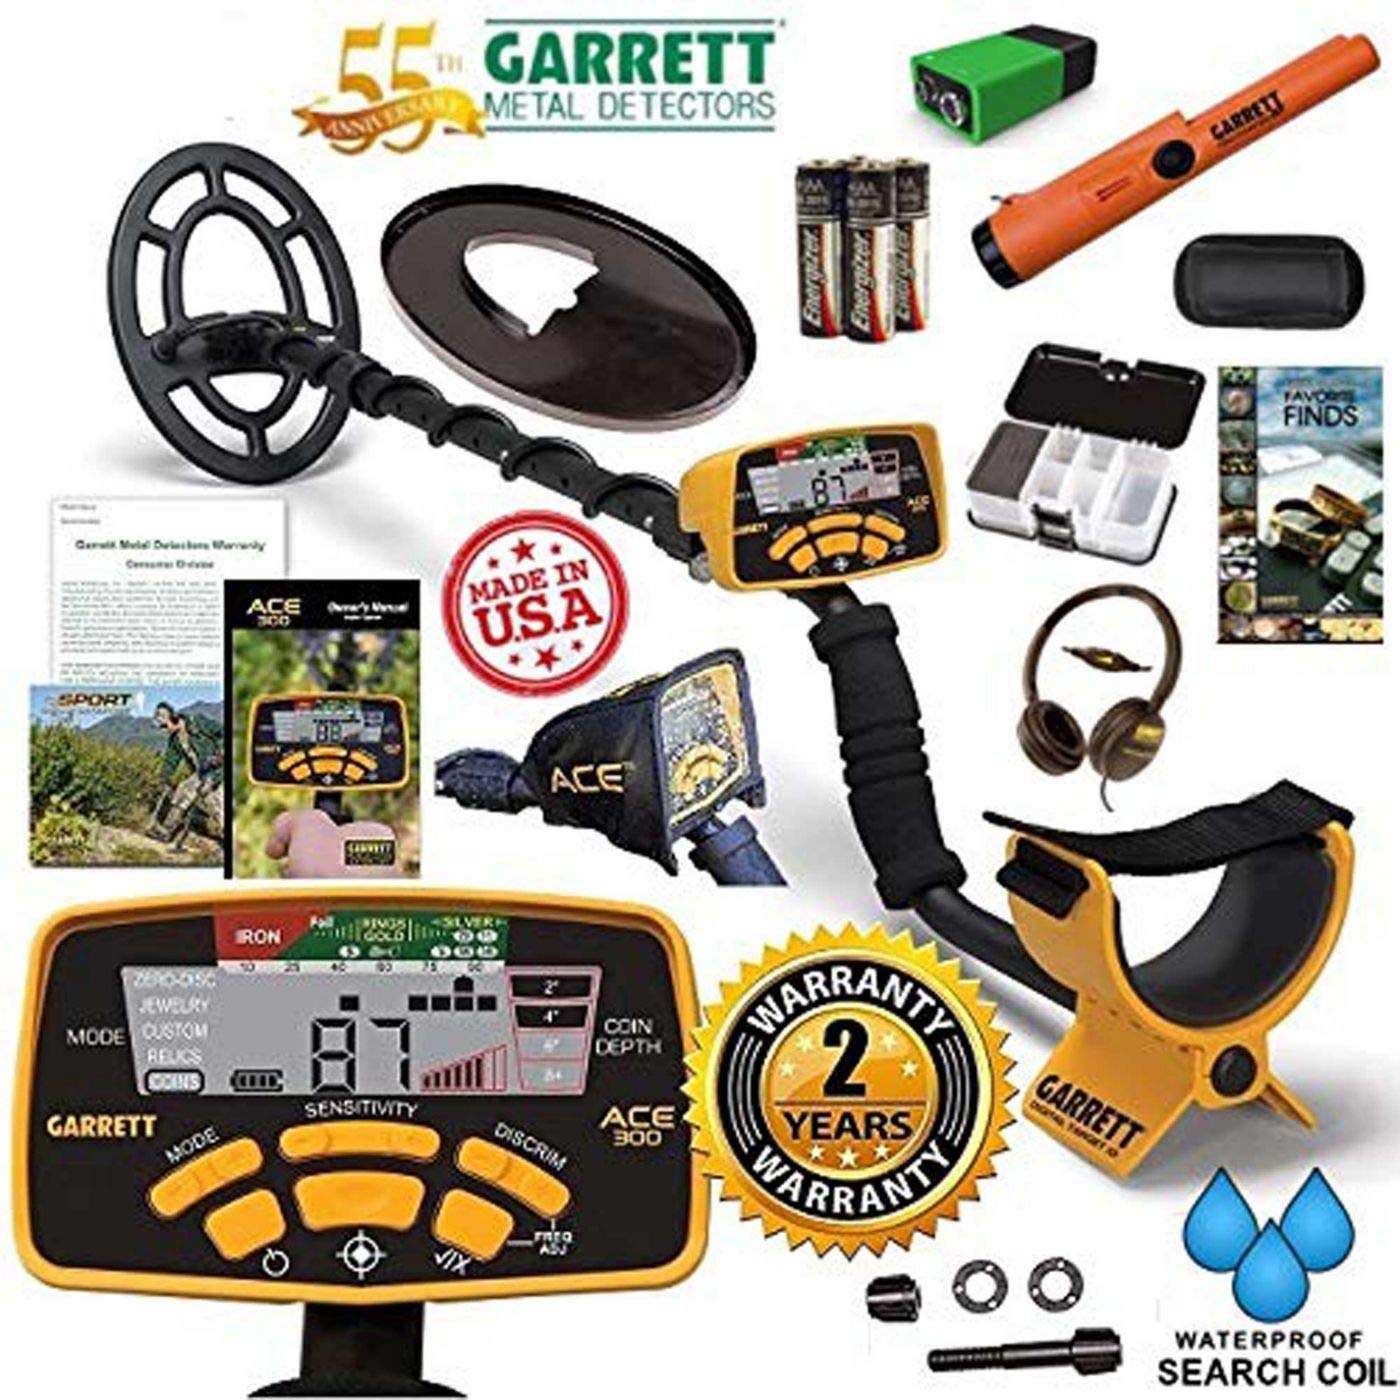 Amazon.com: Garrett Metal Detectors ACE 300 55 Year ...